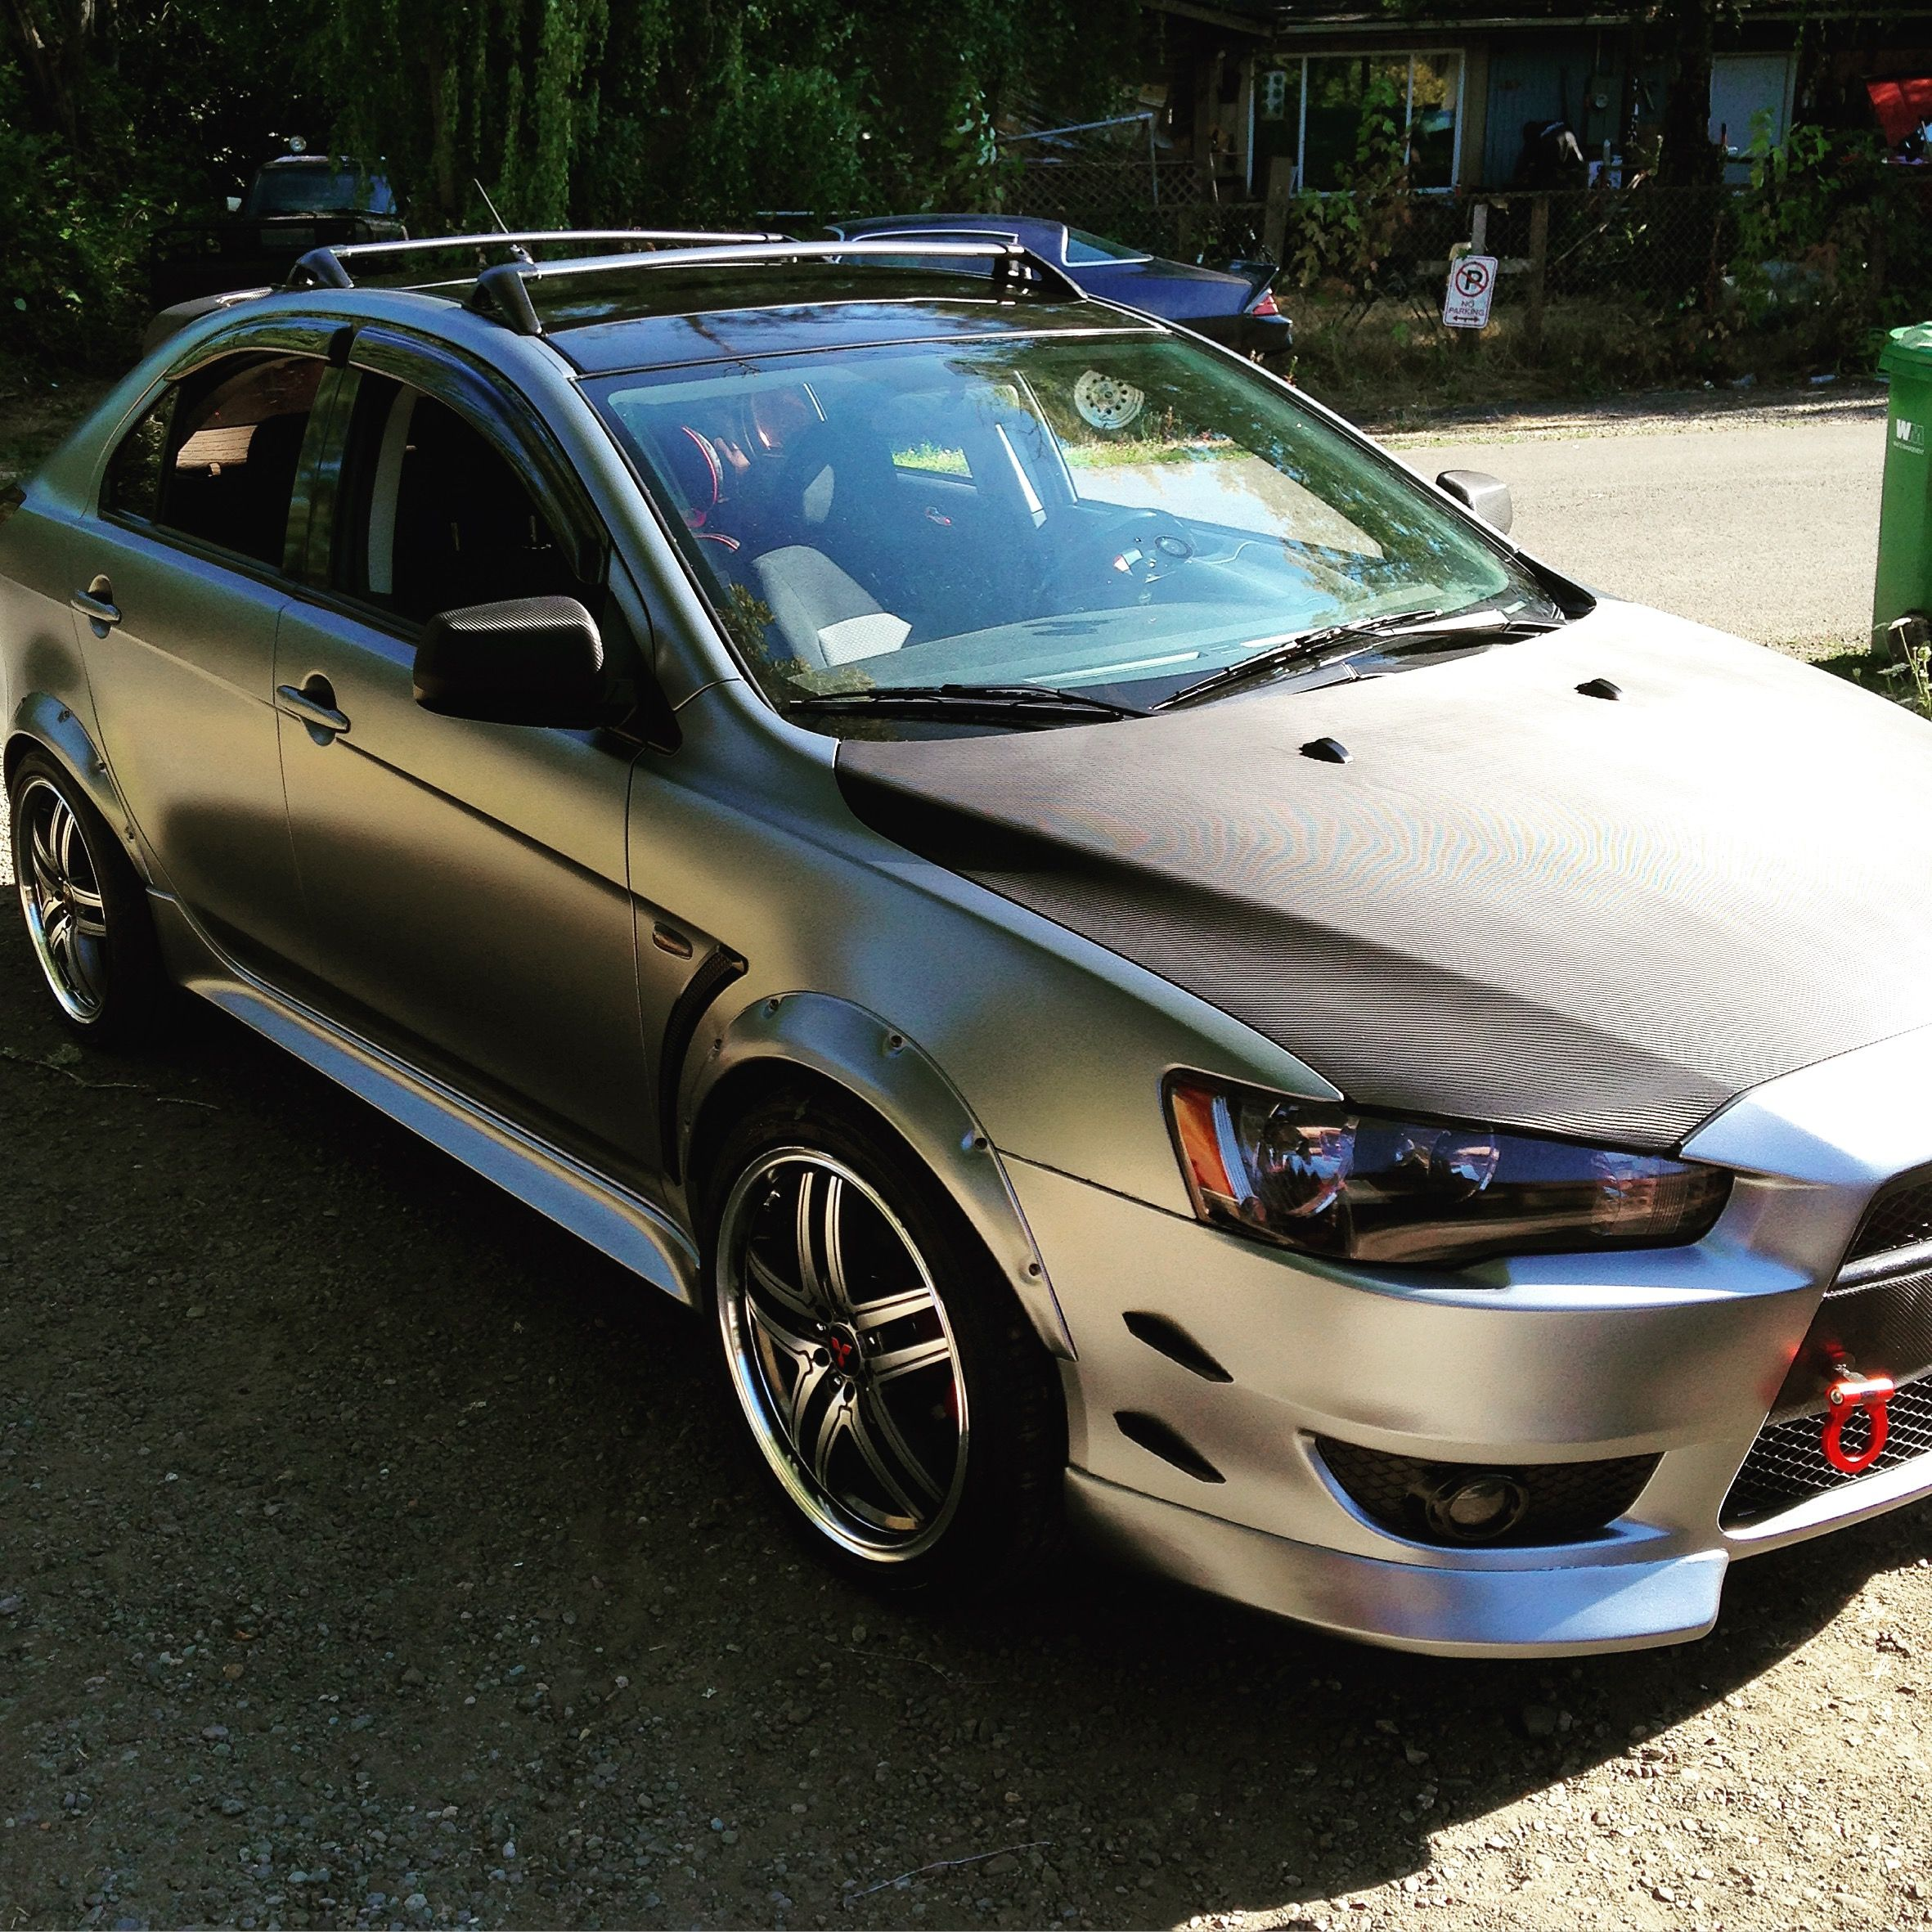 Jdm Mitsubishi Lancer Evolution 4k: 2010 Mitsubishi Lancer Sportback #jdm #stanced #lowered